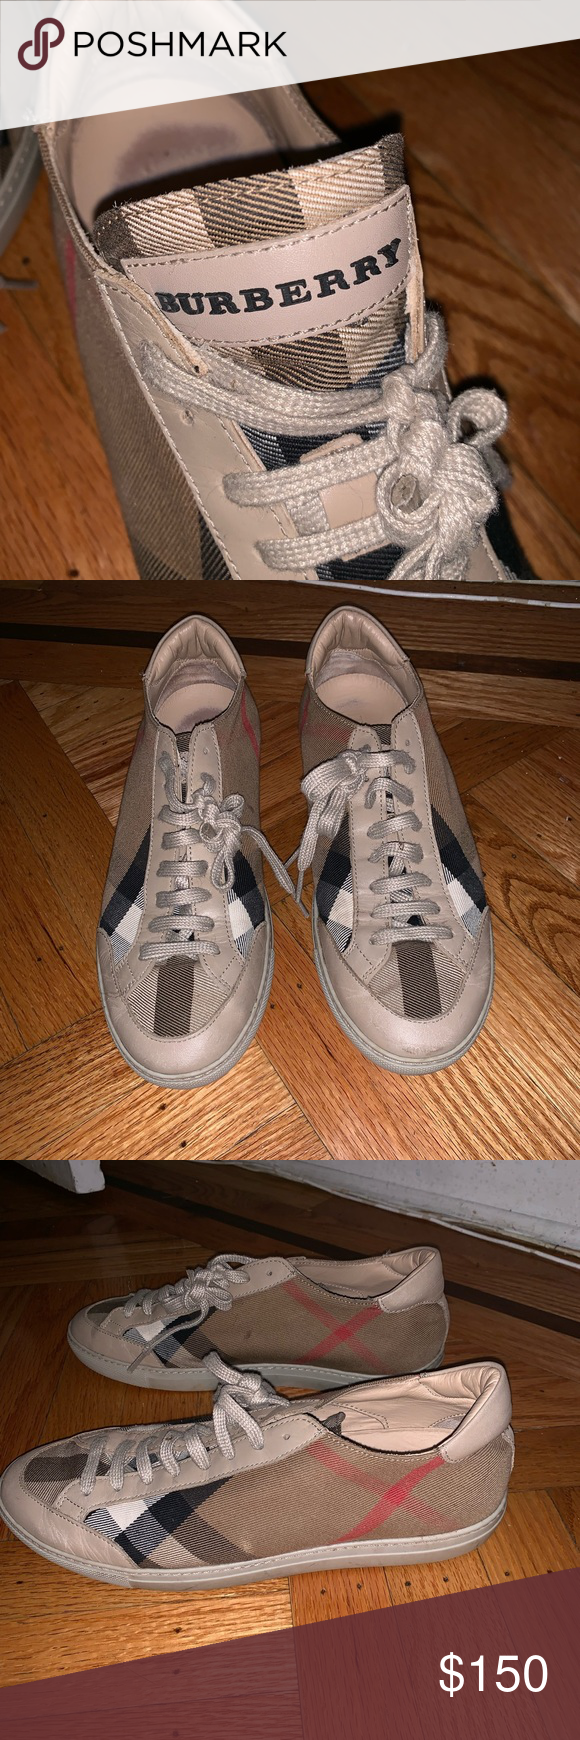 fdc02adc2f7 Burberry Women s Sneaker Size 39 Size 39. Lightly worn